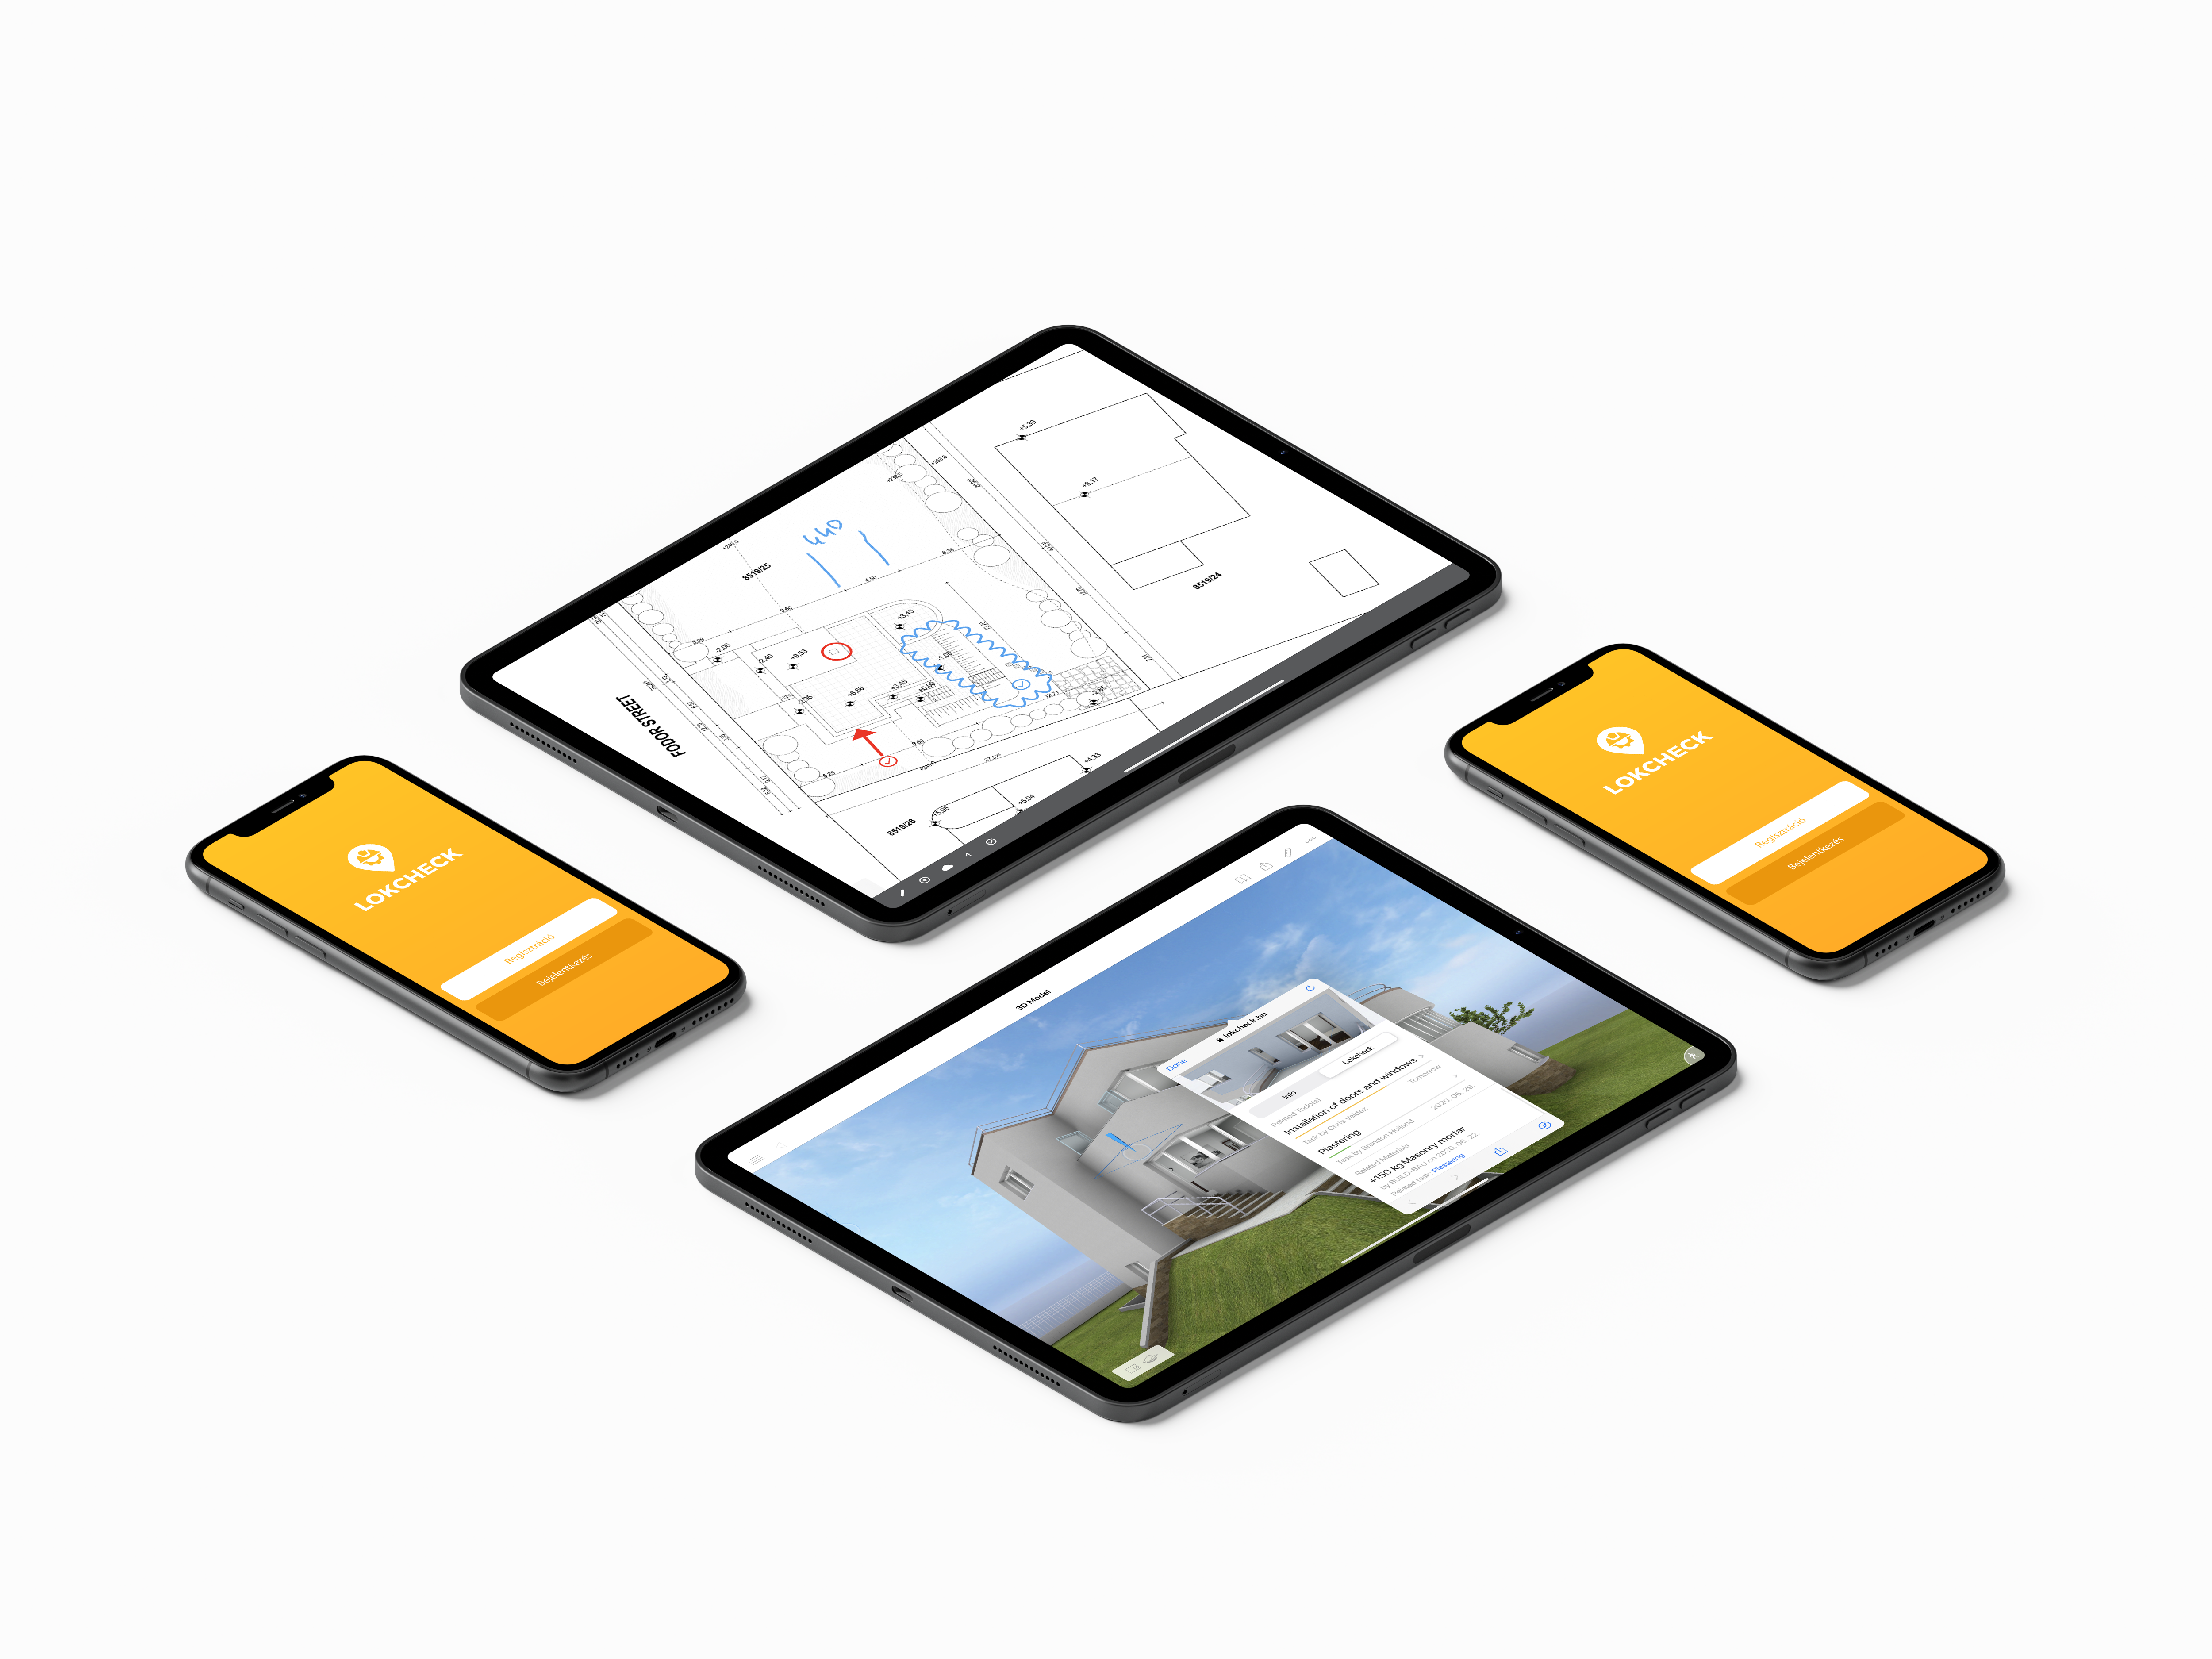 project management software BIMx feature on ipad tablet and iphone phone